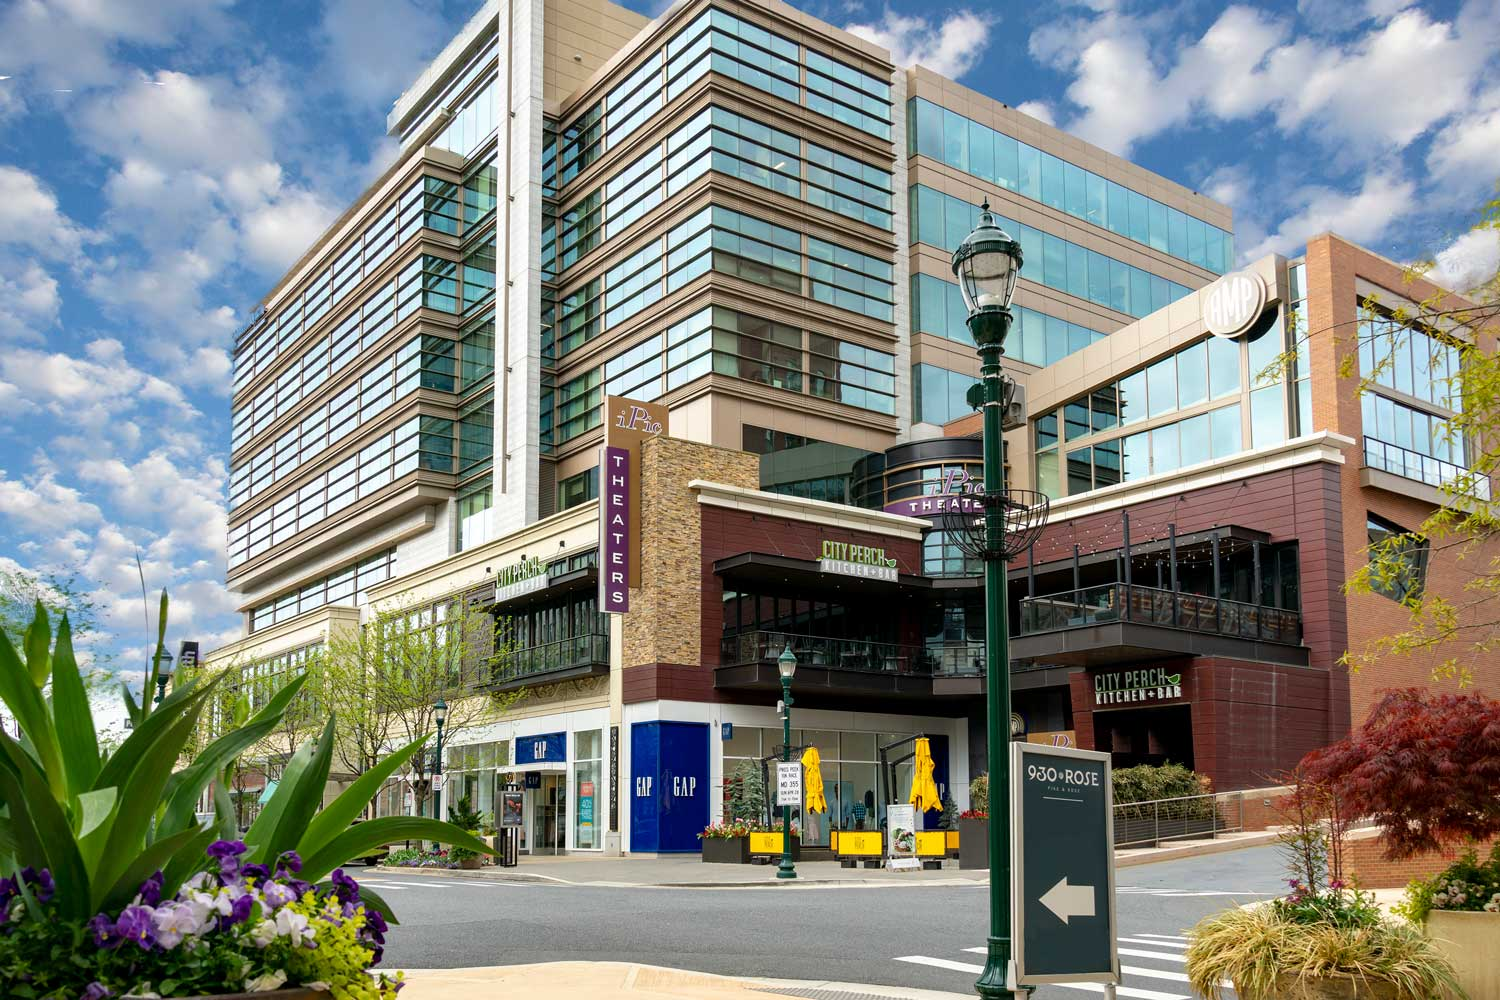 iPic Theater is 5 minutes from Village Square West Apartments in North Bethesda, MD